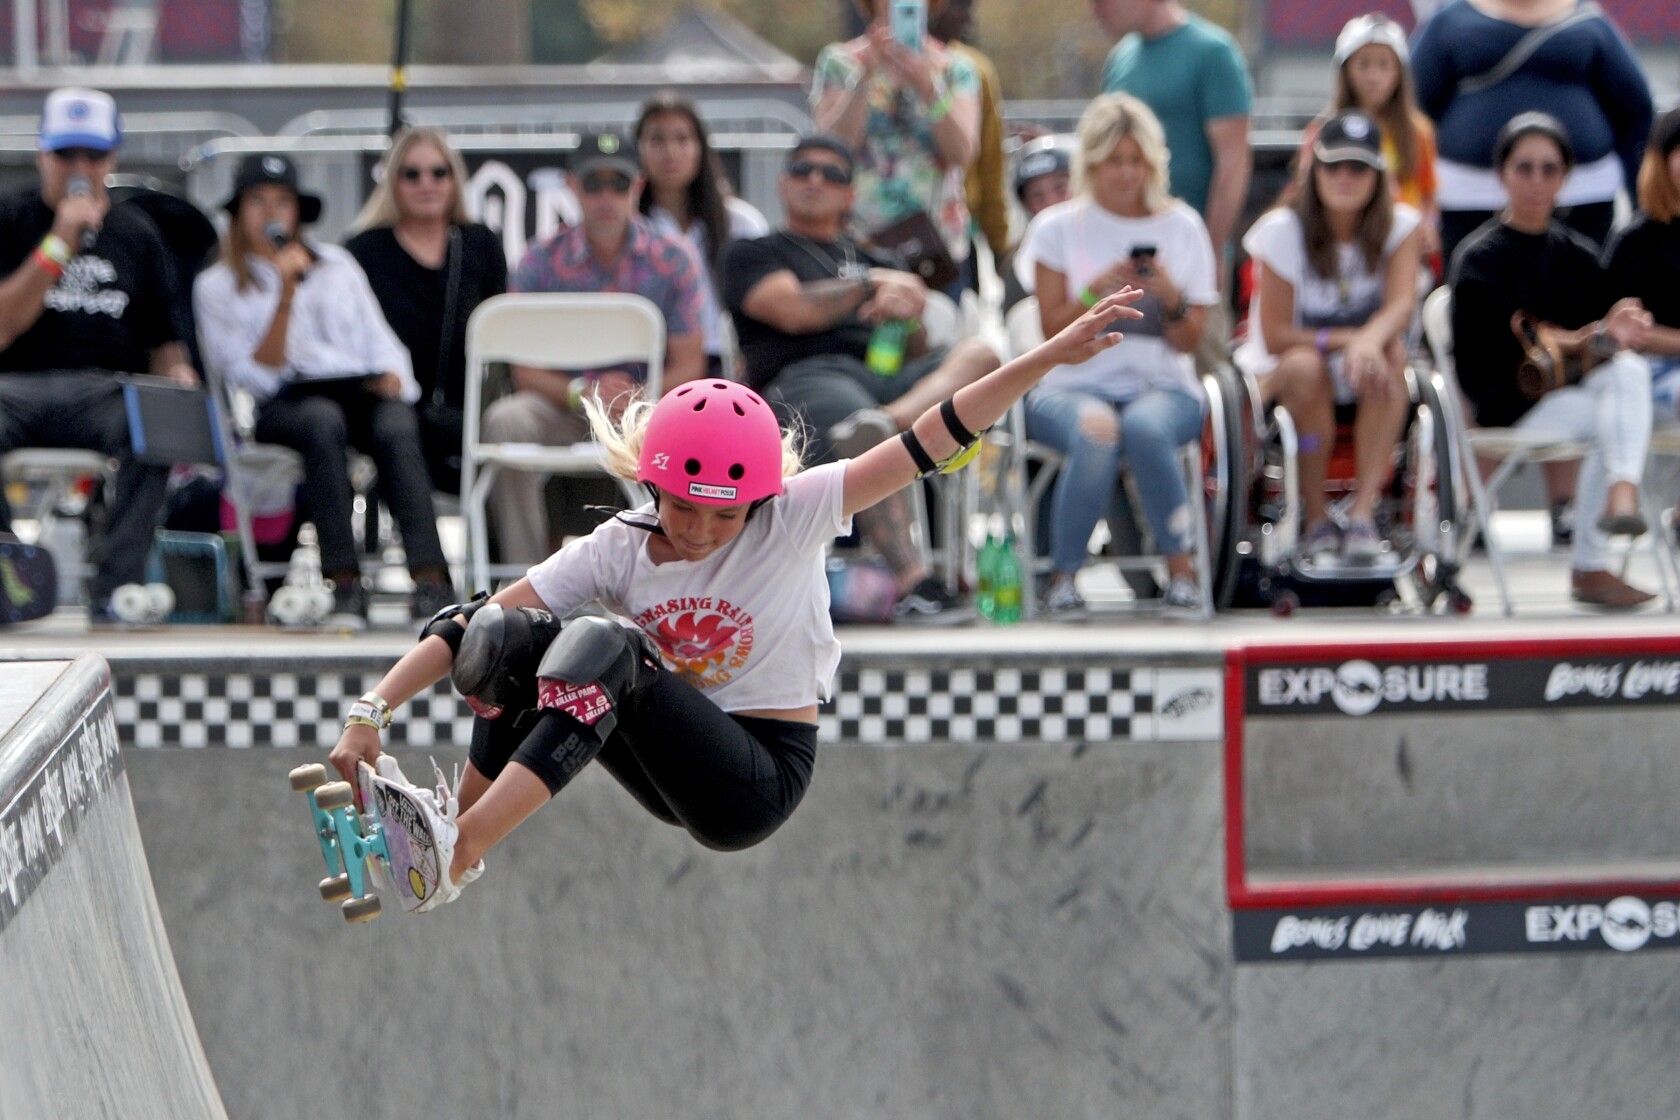 Female skateboarders answer the roll call at Huntington Beach competition